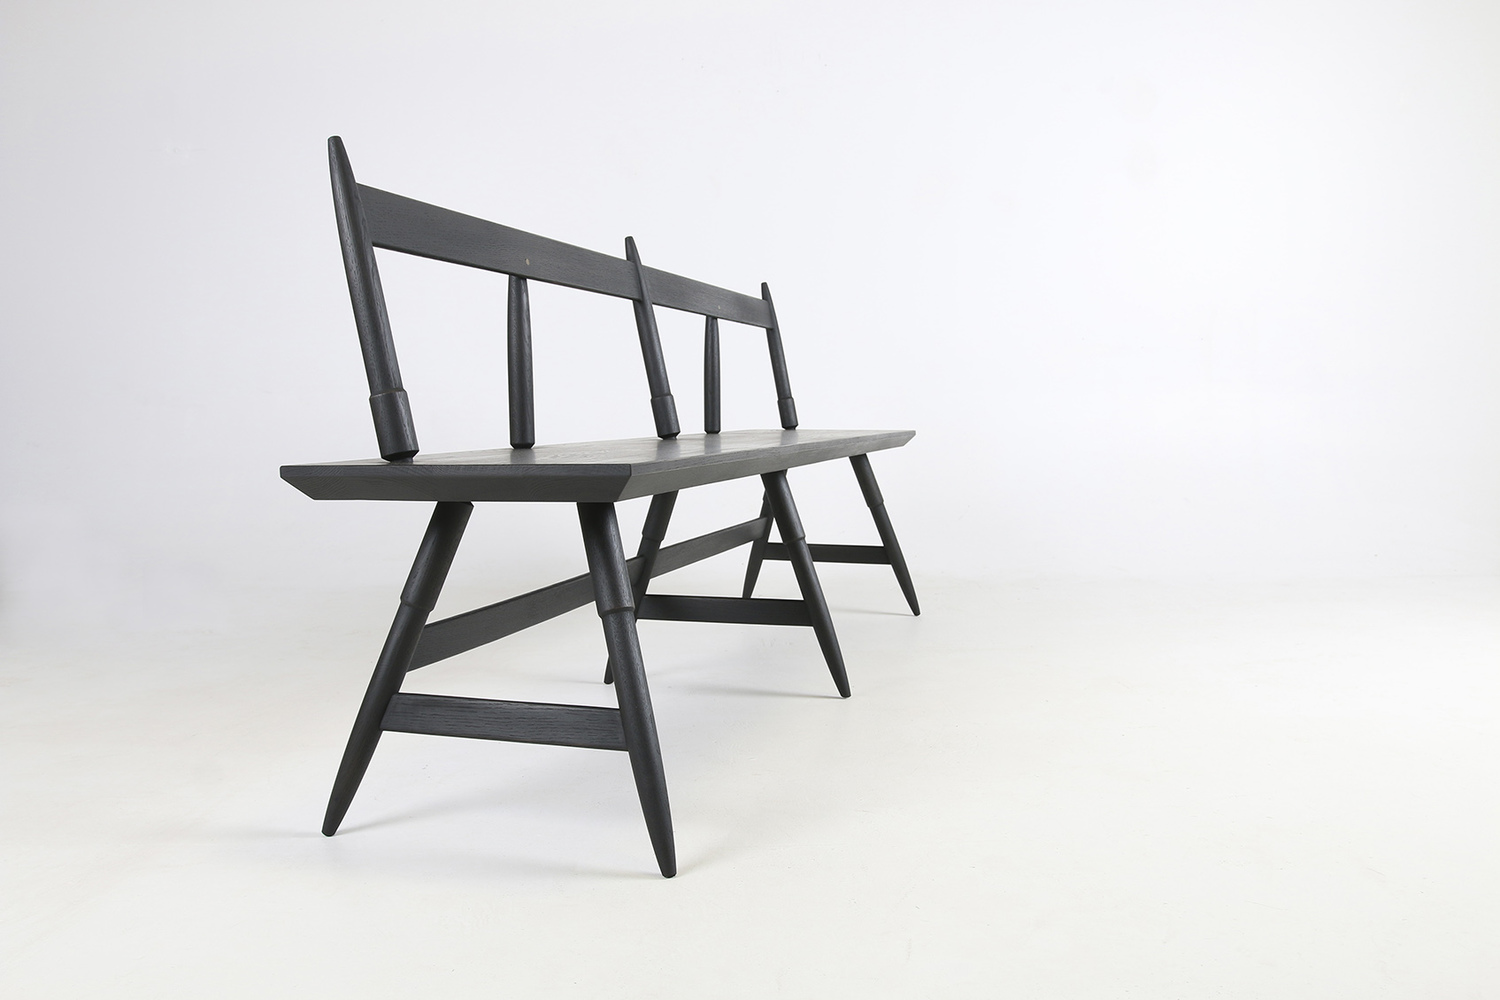 Rockport bench 80 seasoned black side angle view studio dunn